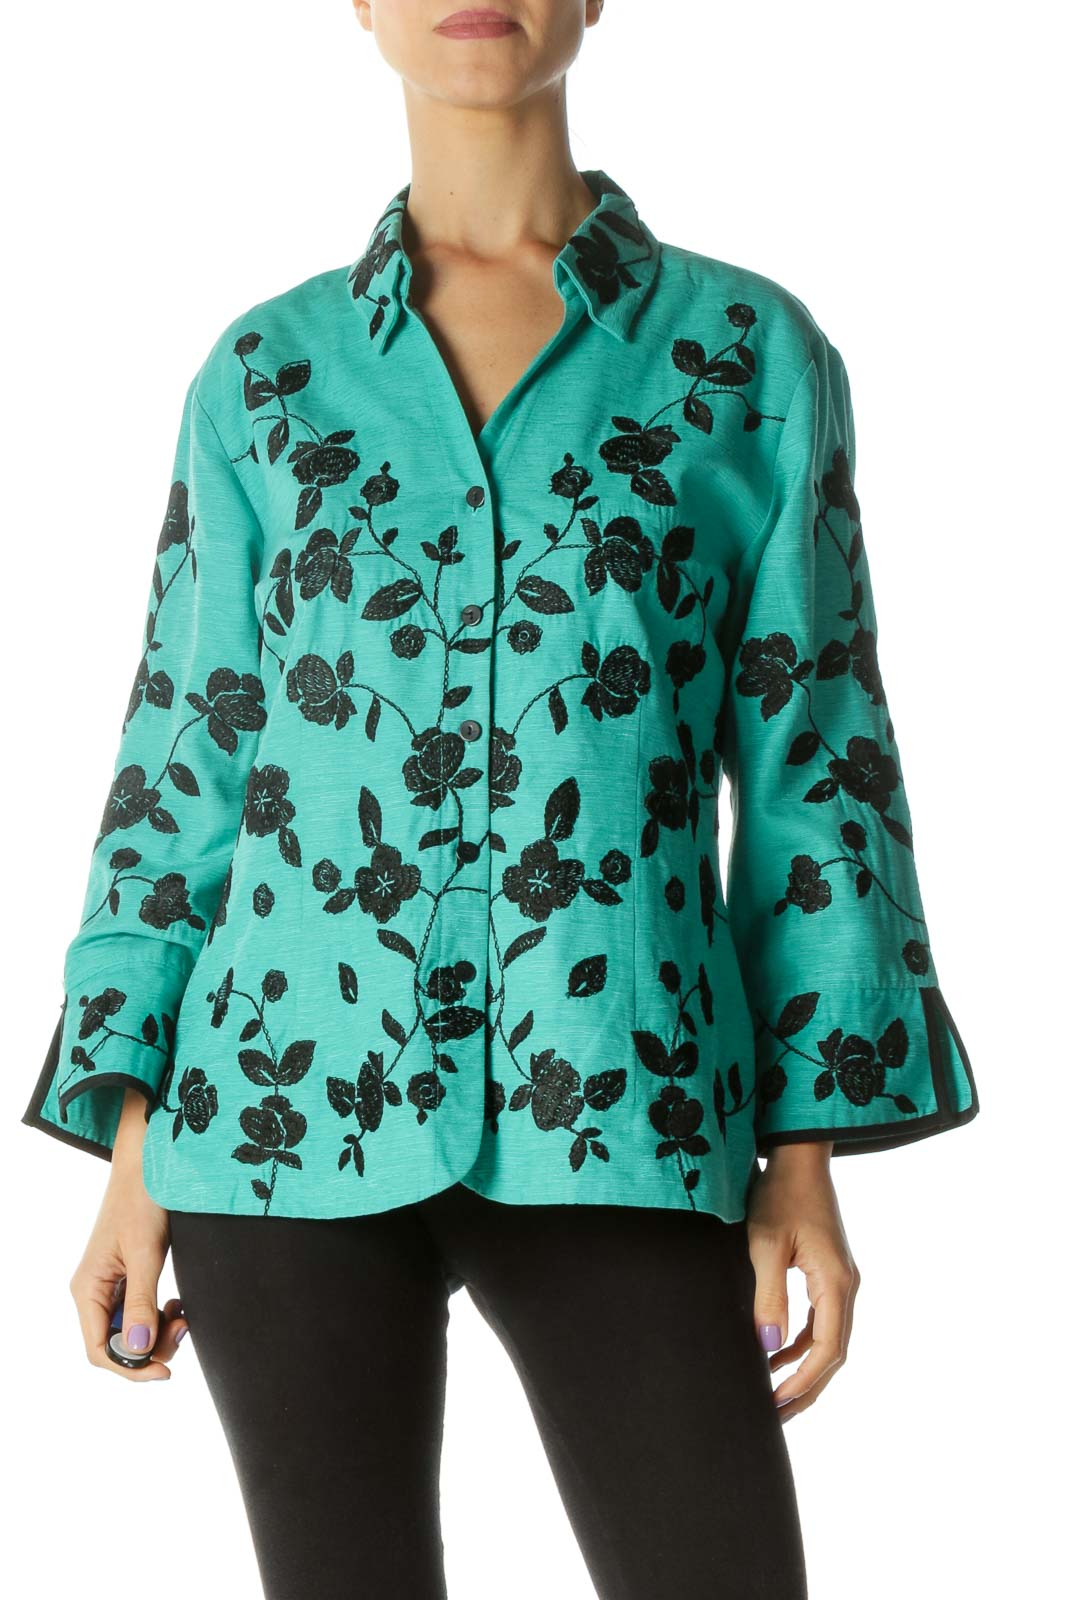 Green and Black Floral Print Button Down Shirt Front